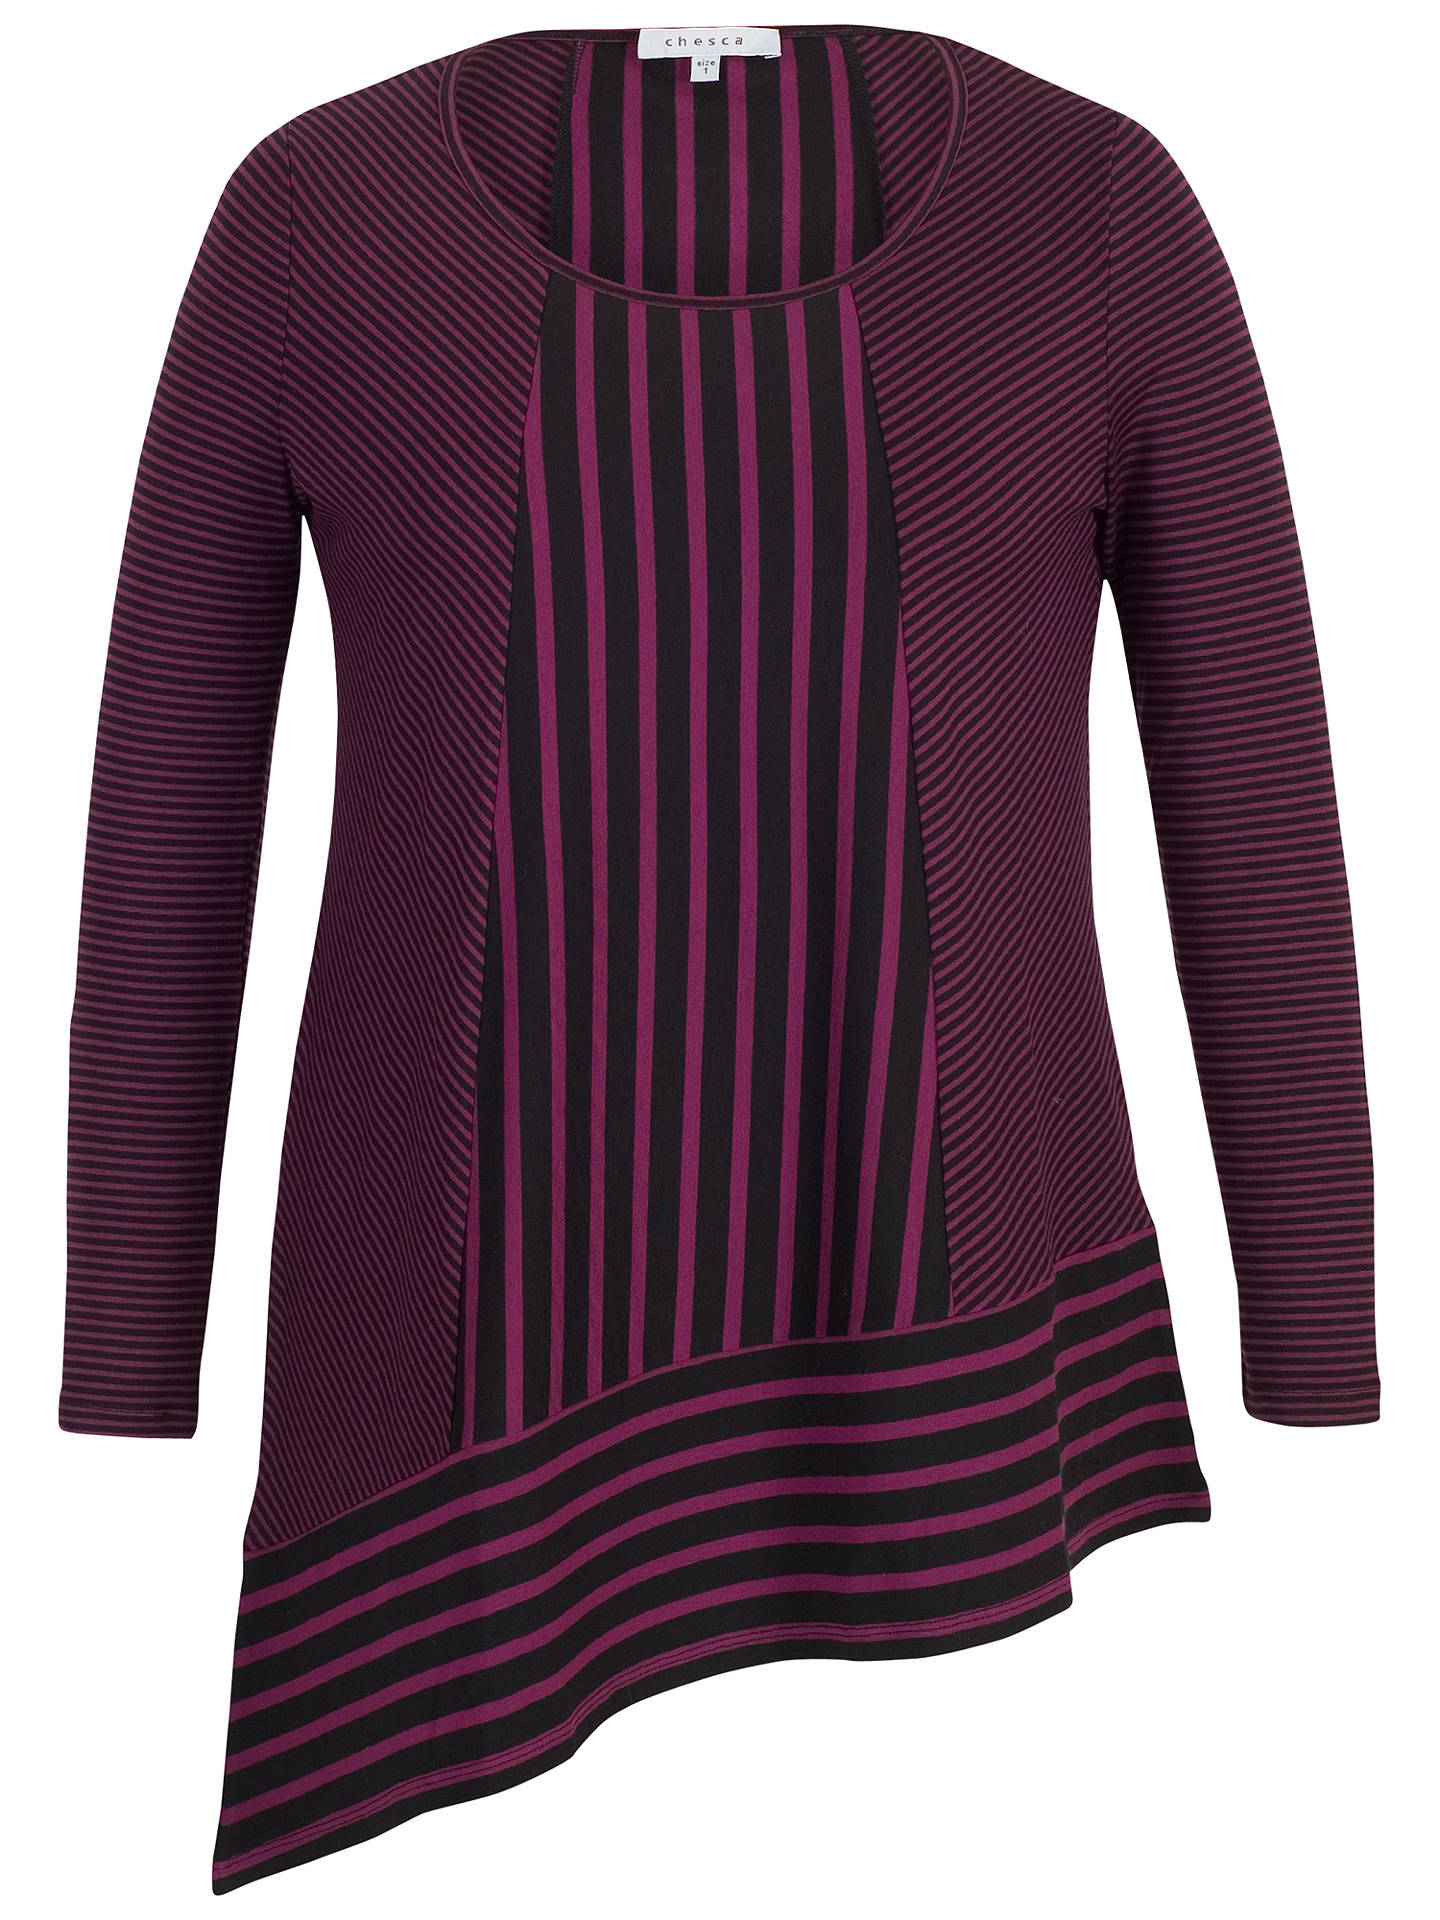 BuyChesca Double Stripe Print Tunic Top, Aubergine/Black, 12-14 Online at johnlewis.com